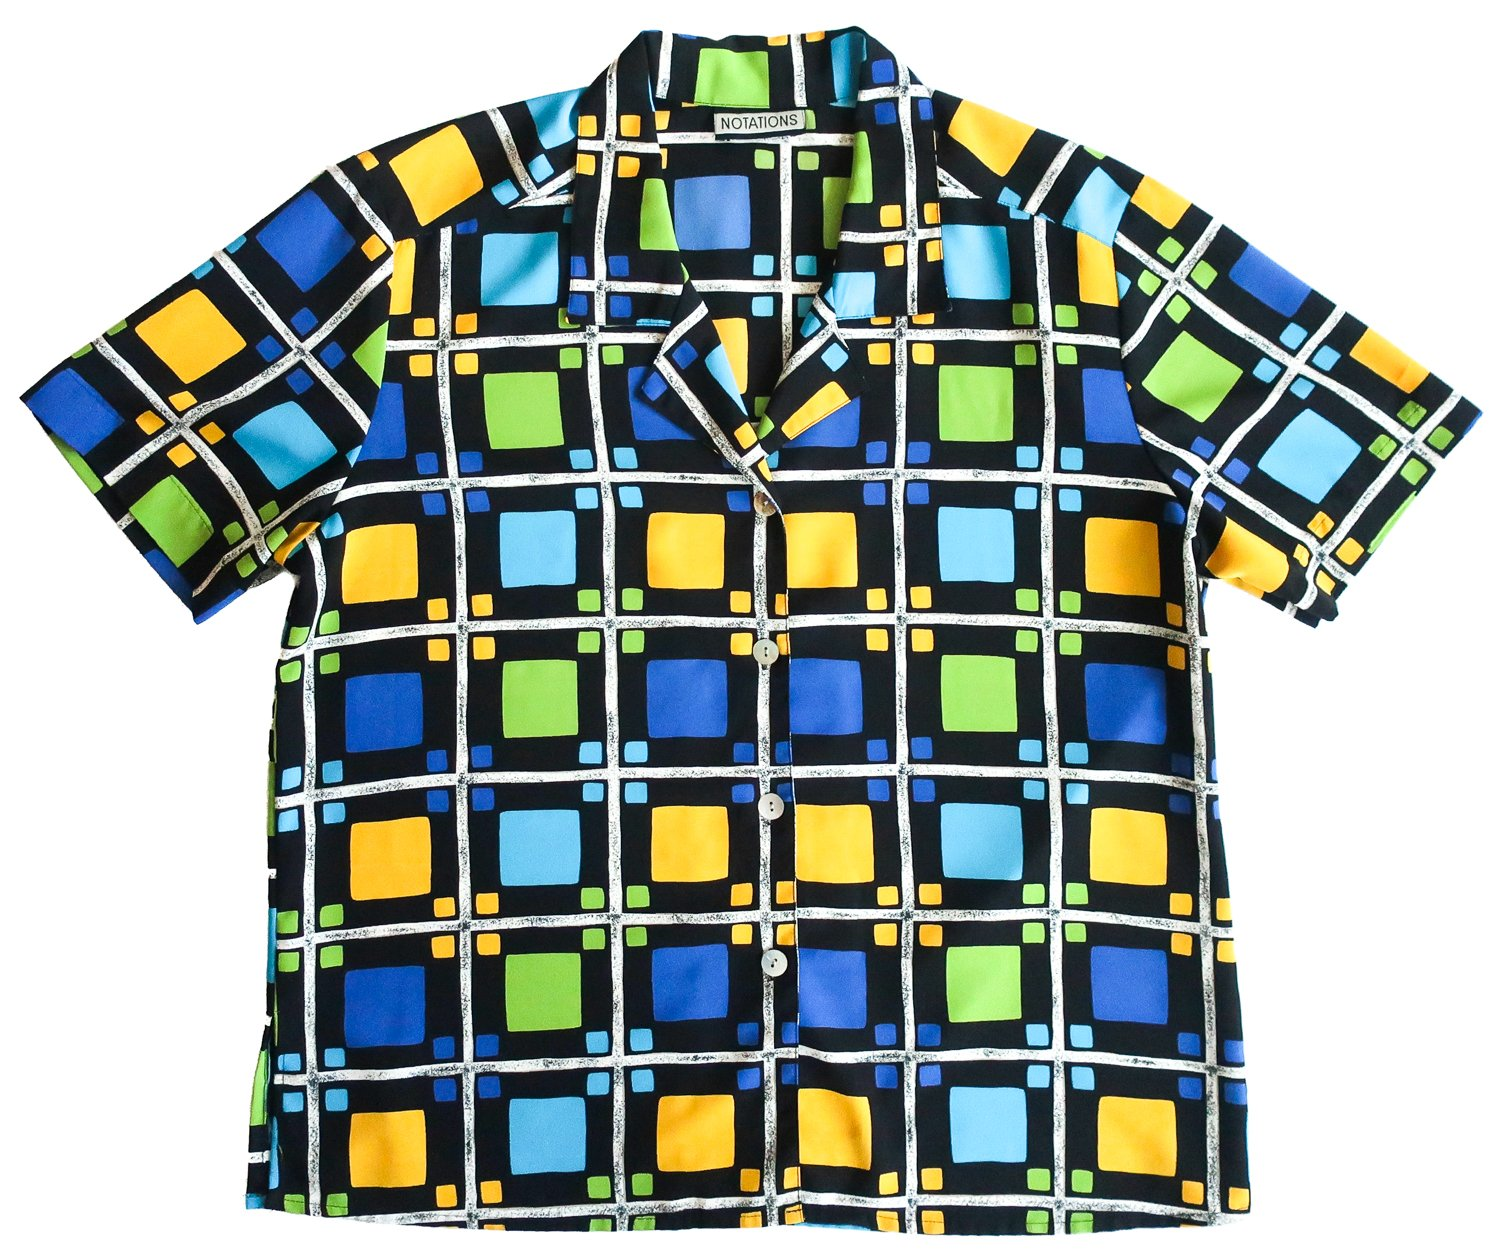 Second Room Vintage Clothing. Vintage short sleeve, blue, yellow and black bowler style blouse, with checker pattern, white shell buttons (no top button), and no shoulder pads. Free Shipping on all orders within North America.